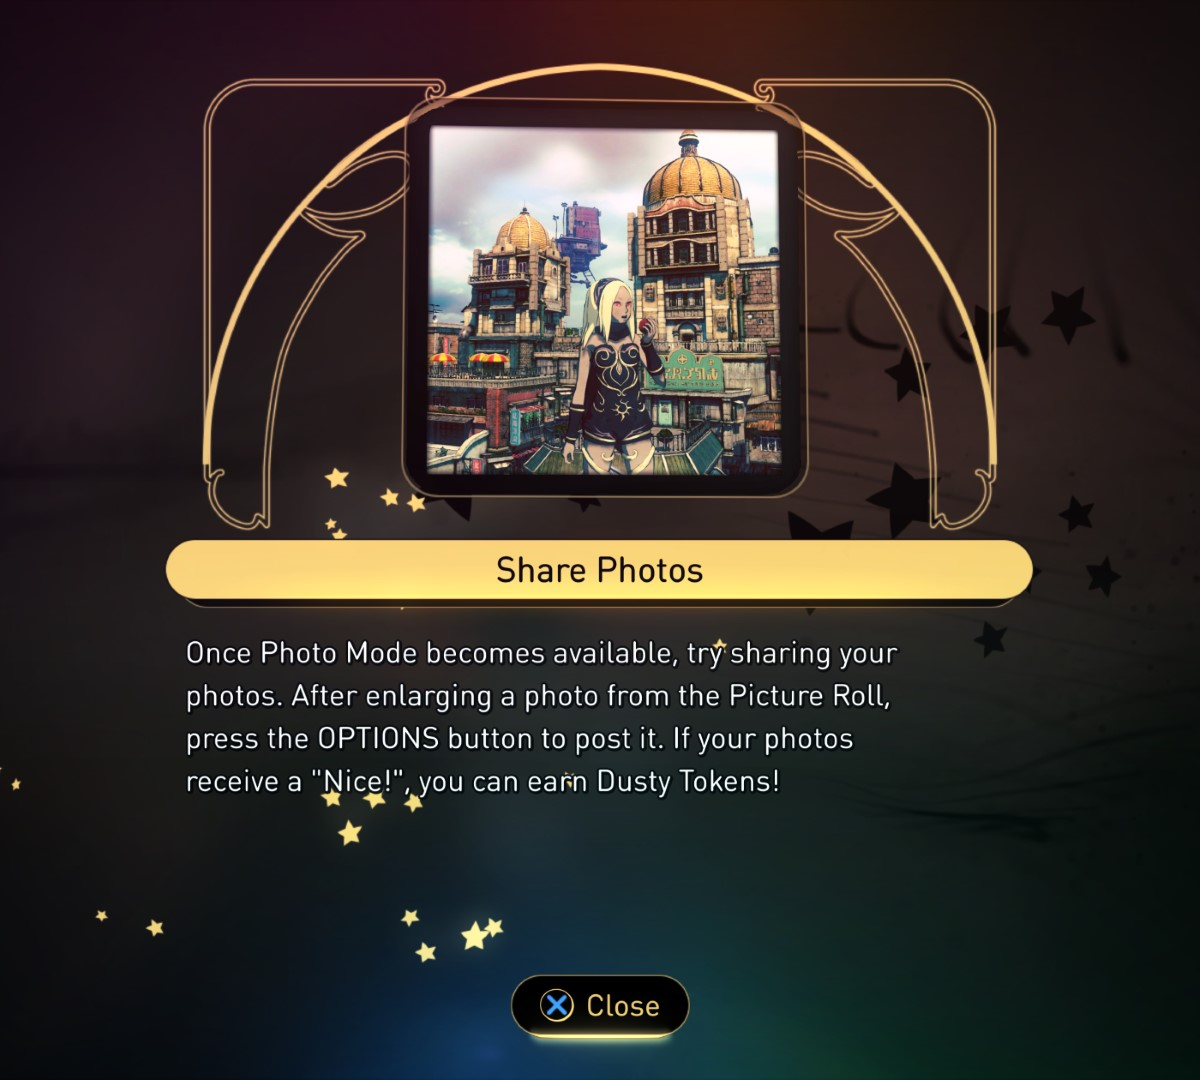 The in-game news topic about photo sharing.